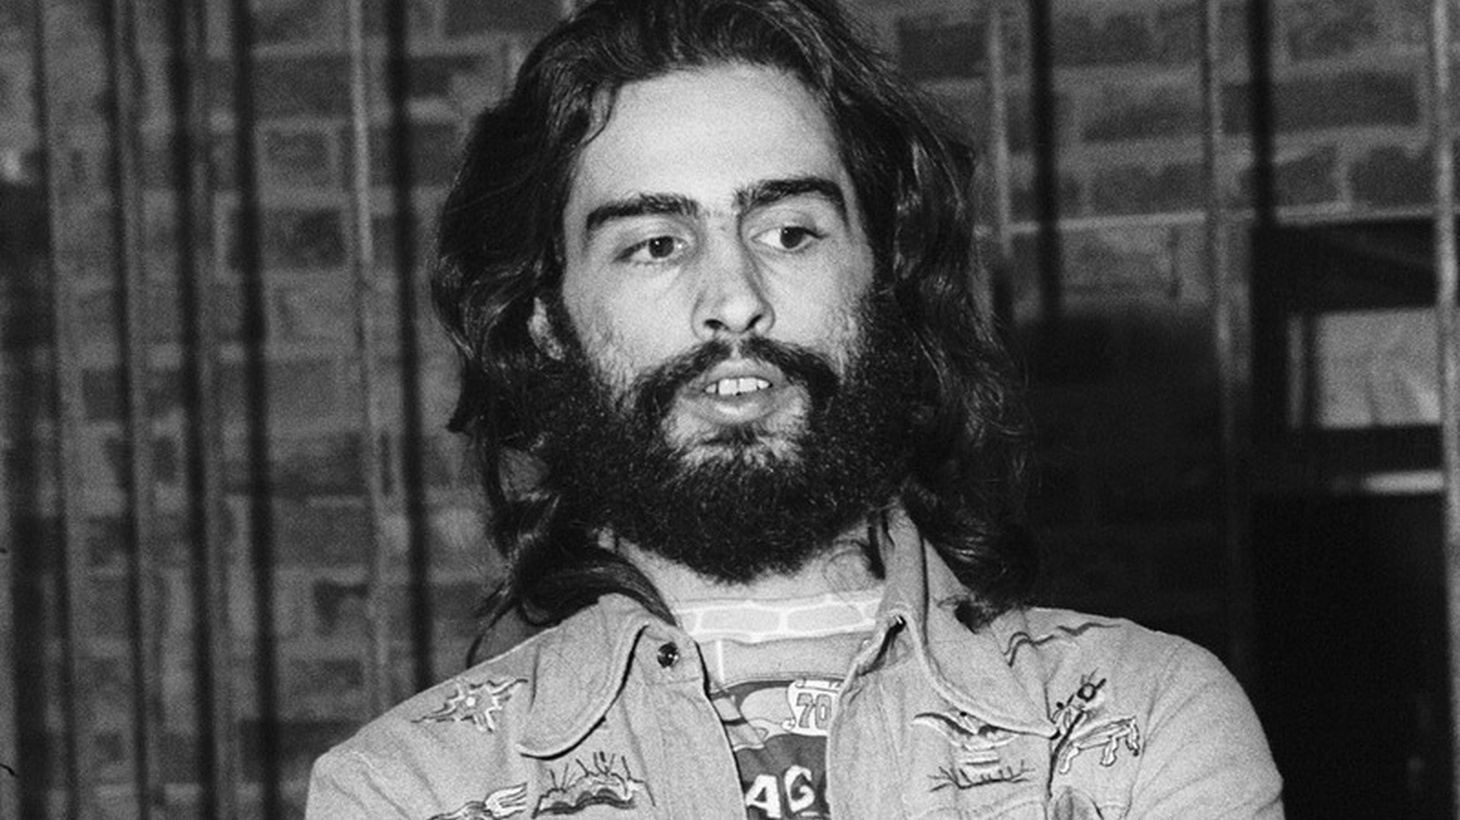 On November 14th, we lost the amazing David Mancuso, at the age of 72. He was one of the founding fathers of the dance music world, based in New York City.